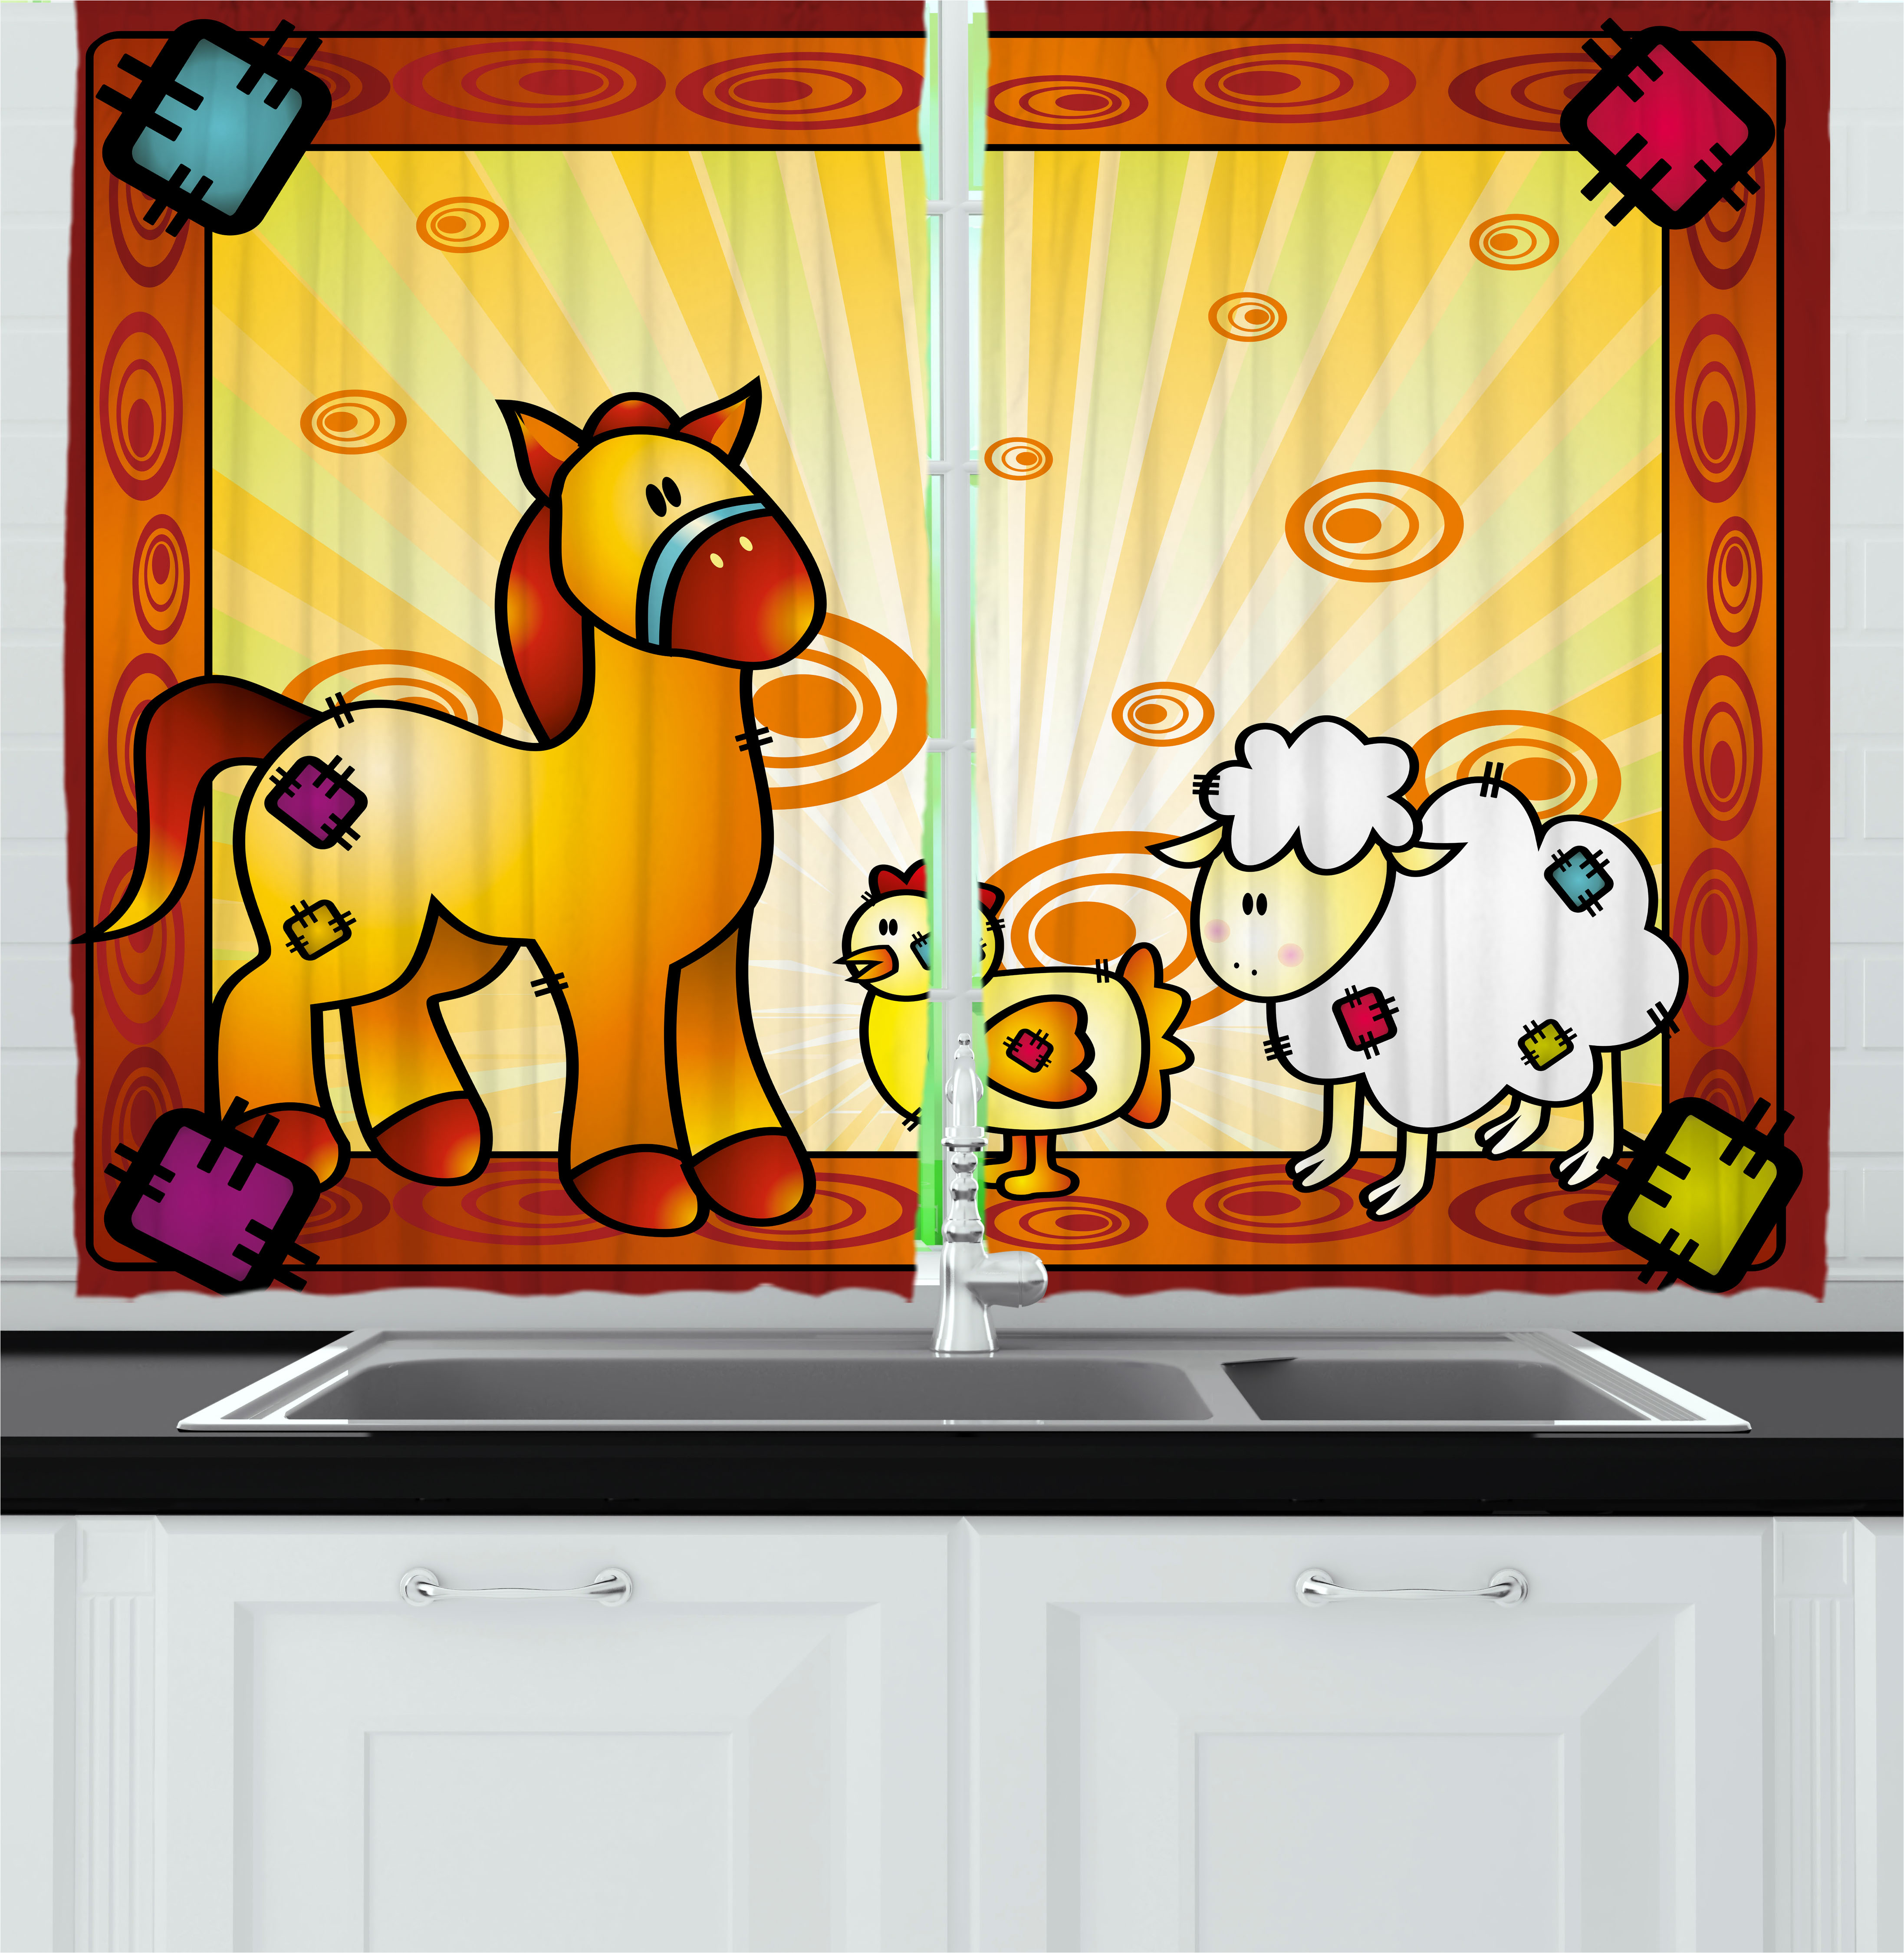 Kids Curtains 2 Panels Set, Animal Friend Chicken Sheep and Horse with Patch Motif Zoo Joyful Cartoon Print, Window Drapes for Living Room Bedroom, 55W X 39L Inches, Red Orange Yellow, by Ambesonne